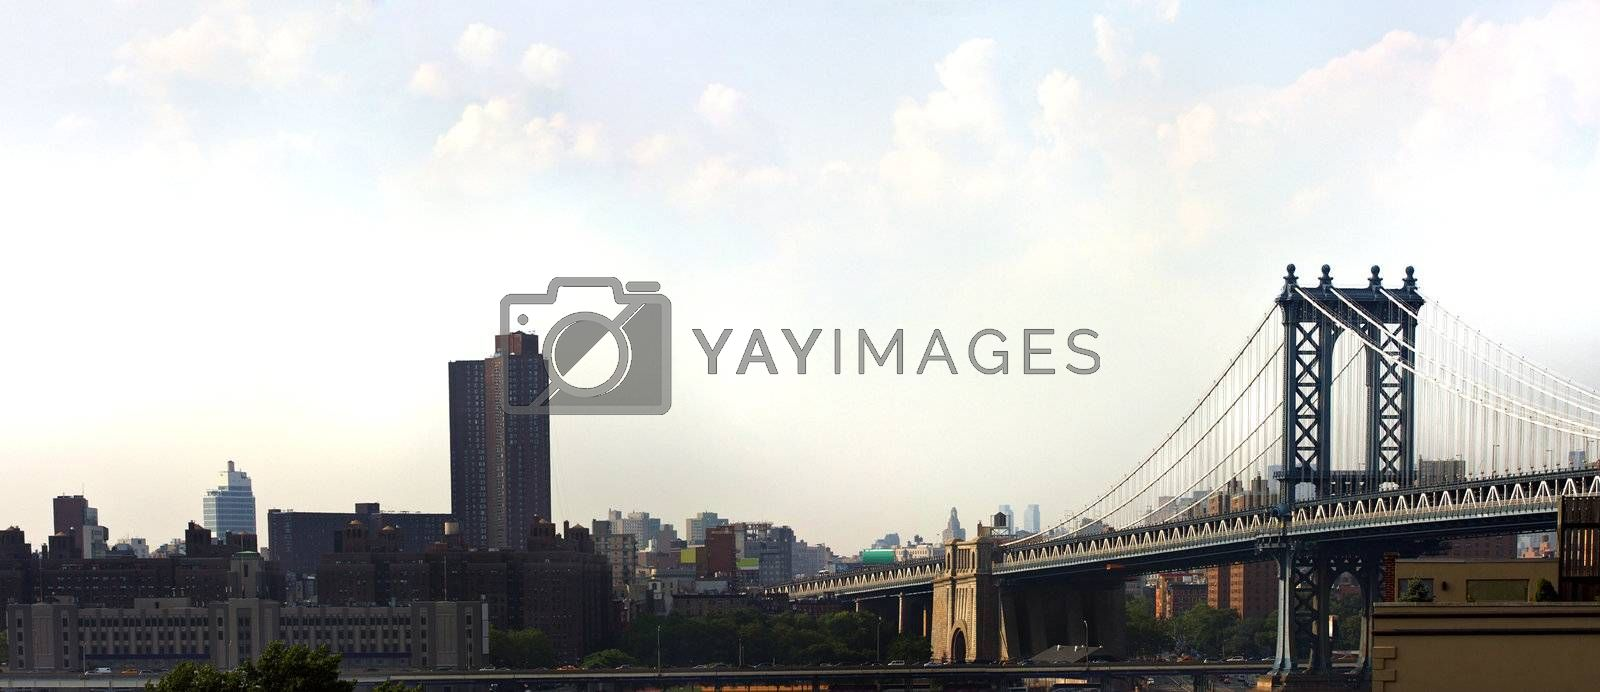 The famous and historic Manhattan Bridge located in New York City.